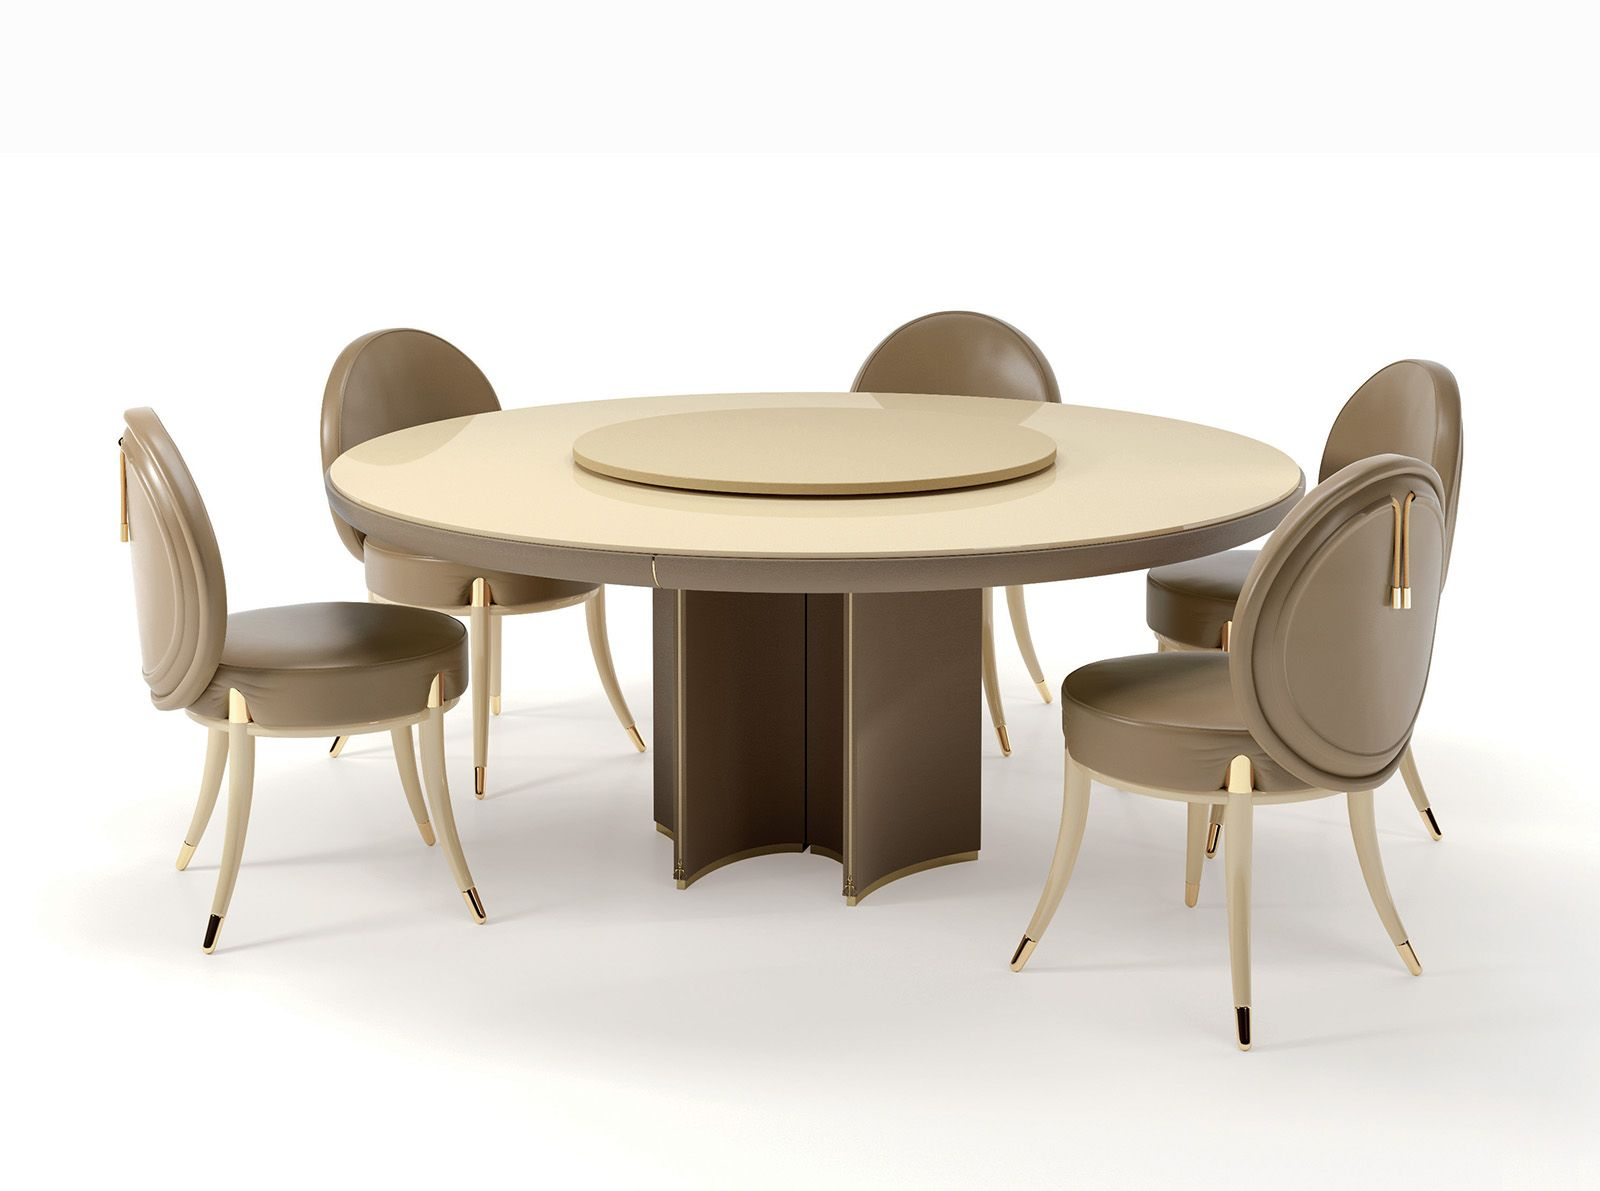 Noir Collection www.turri.it Round table with lazy susan | The Art ...